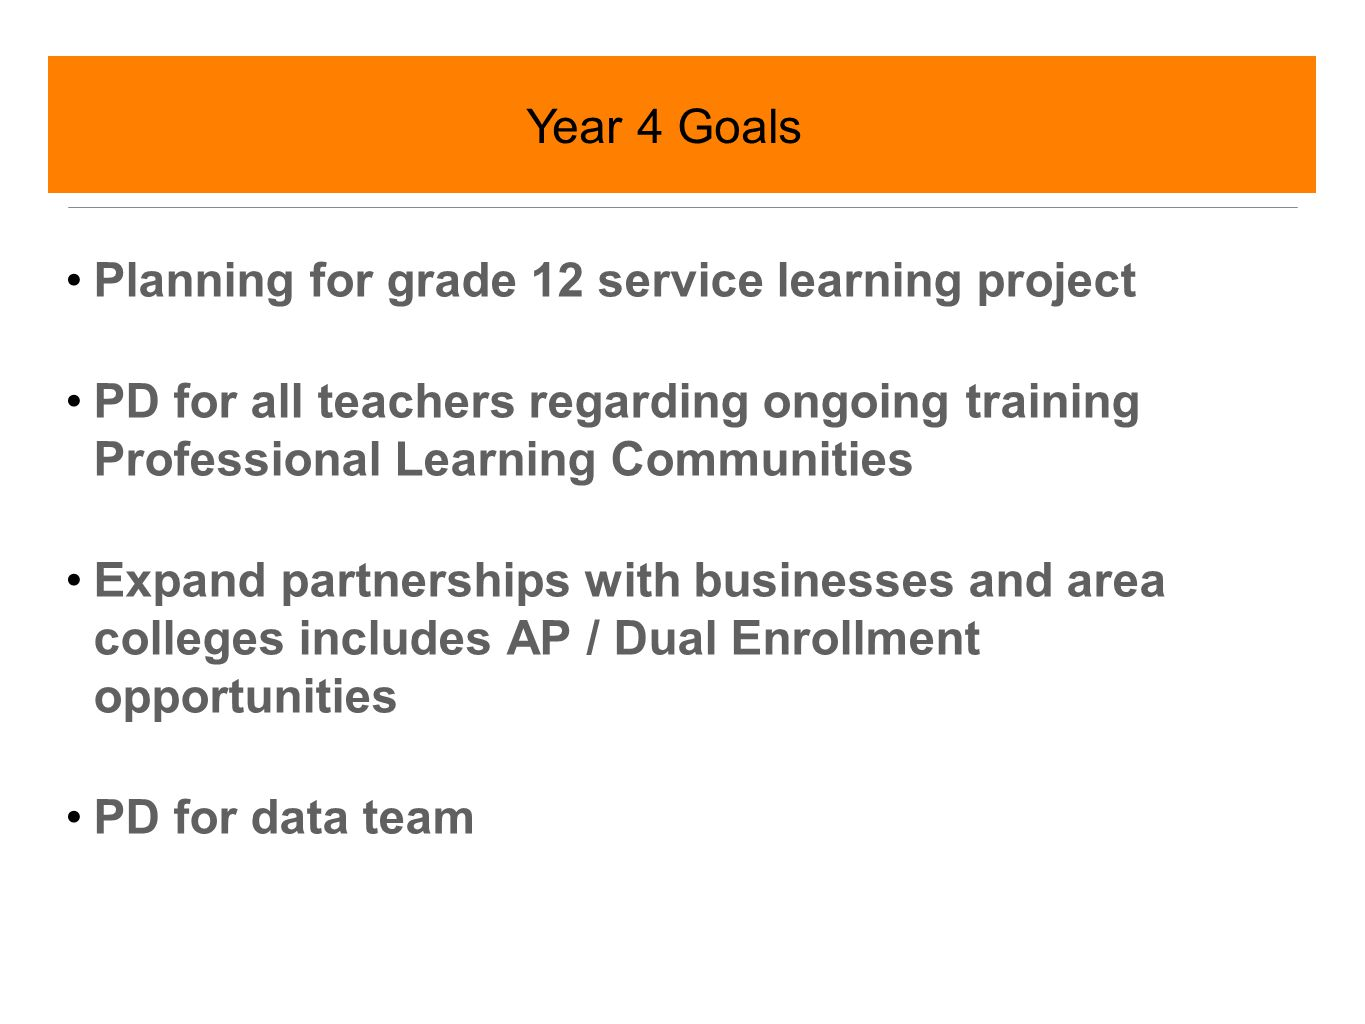 Implement Grade 12 service learning project Review of progress towards achievement of overall goals yearly Planning for full sustainability of all programs and structures beyond grant Year 5 Goals